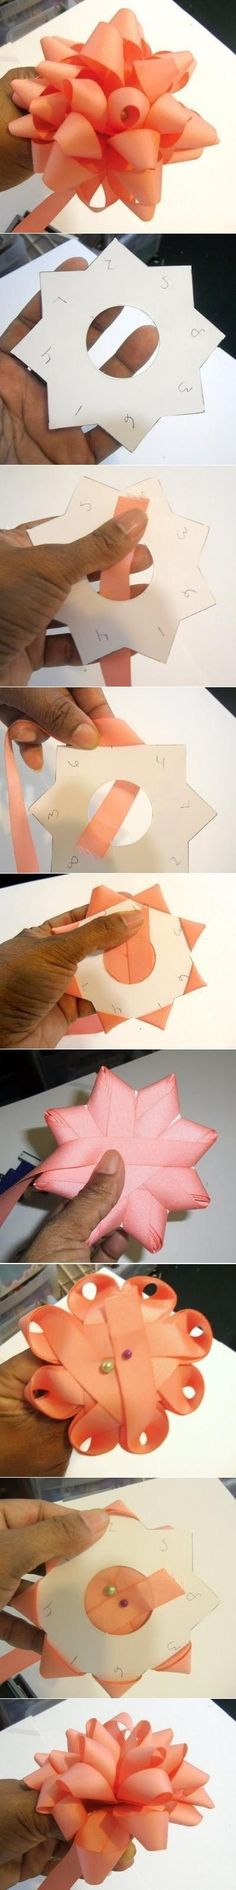 DIY Ribbon bow-picture tutorial